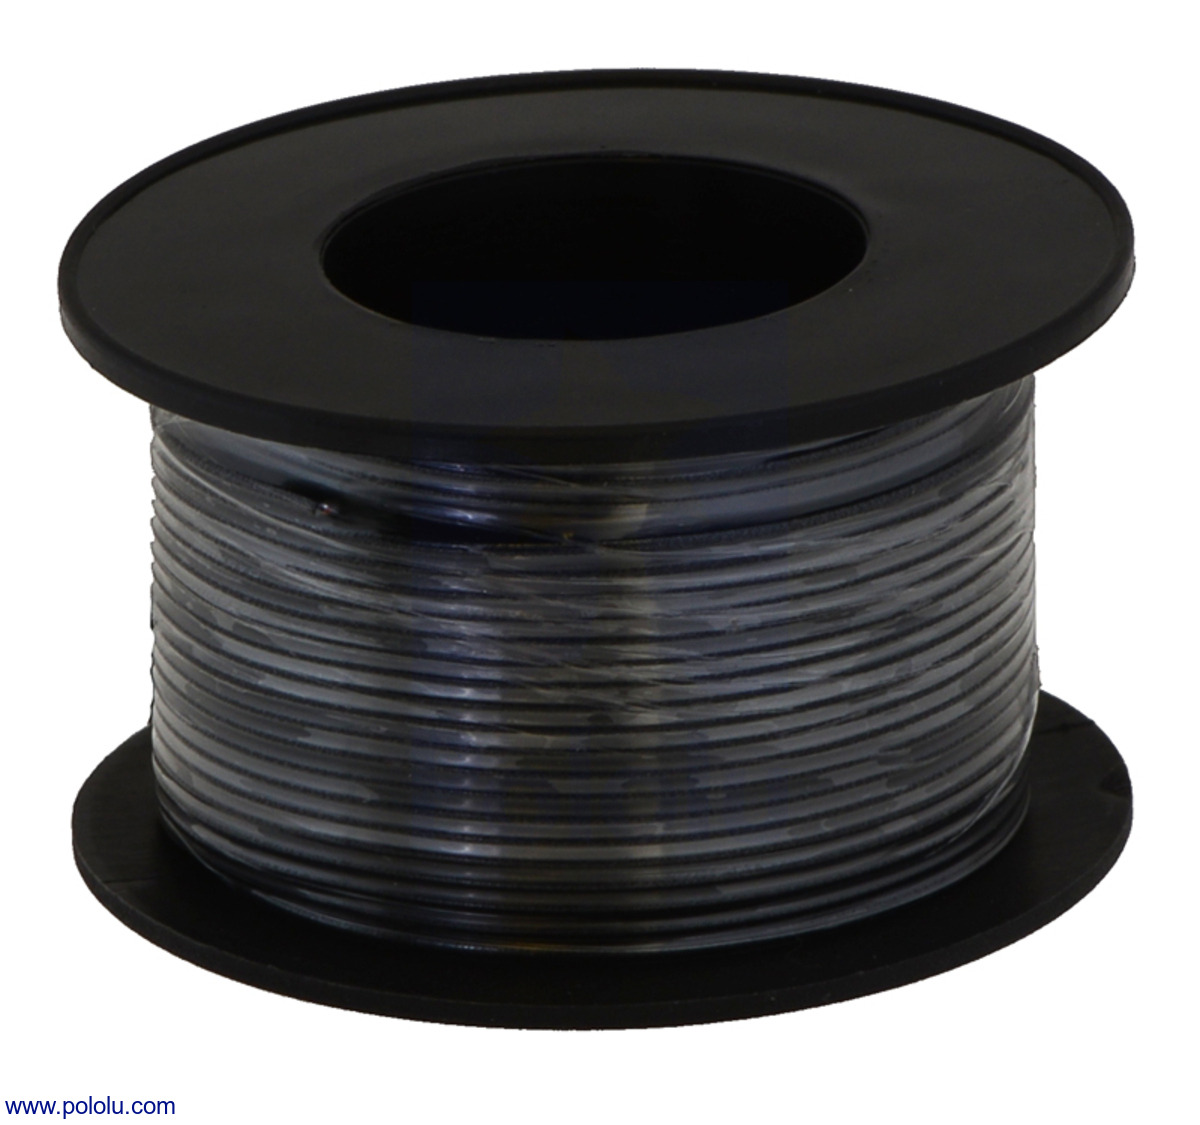 Pololu stranded wire black 20 awg 40 feet stranded wire black 20 awg 40 feet greentooth Choice Image